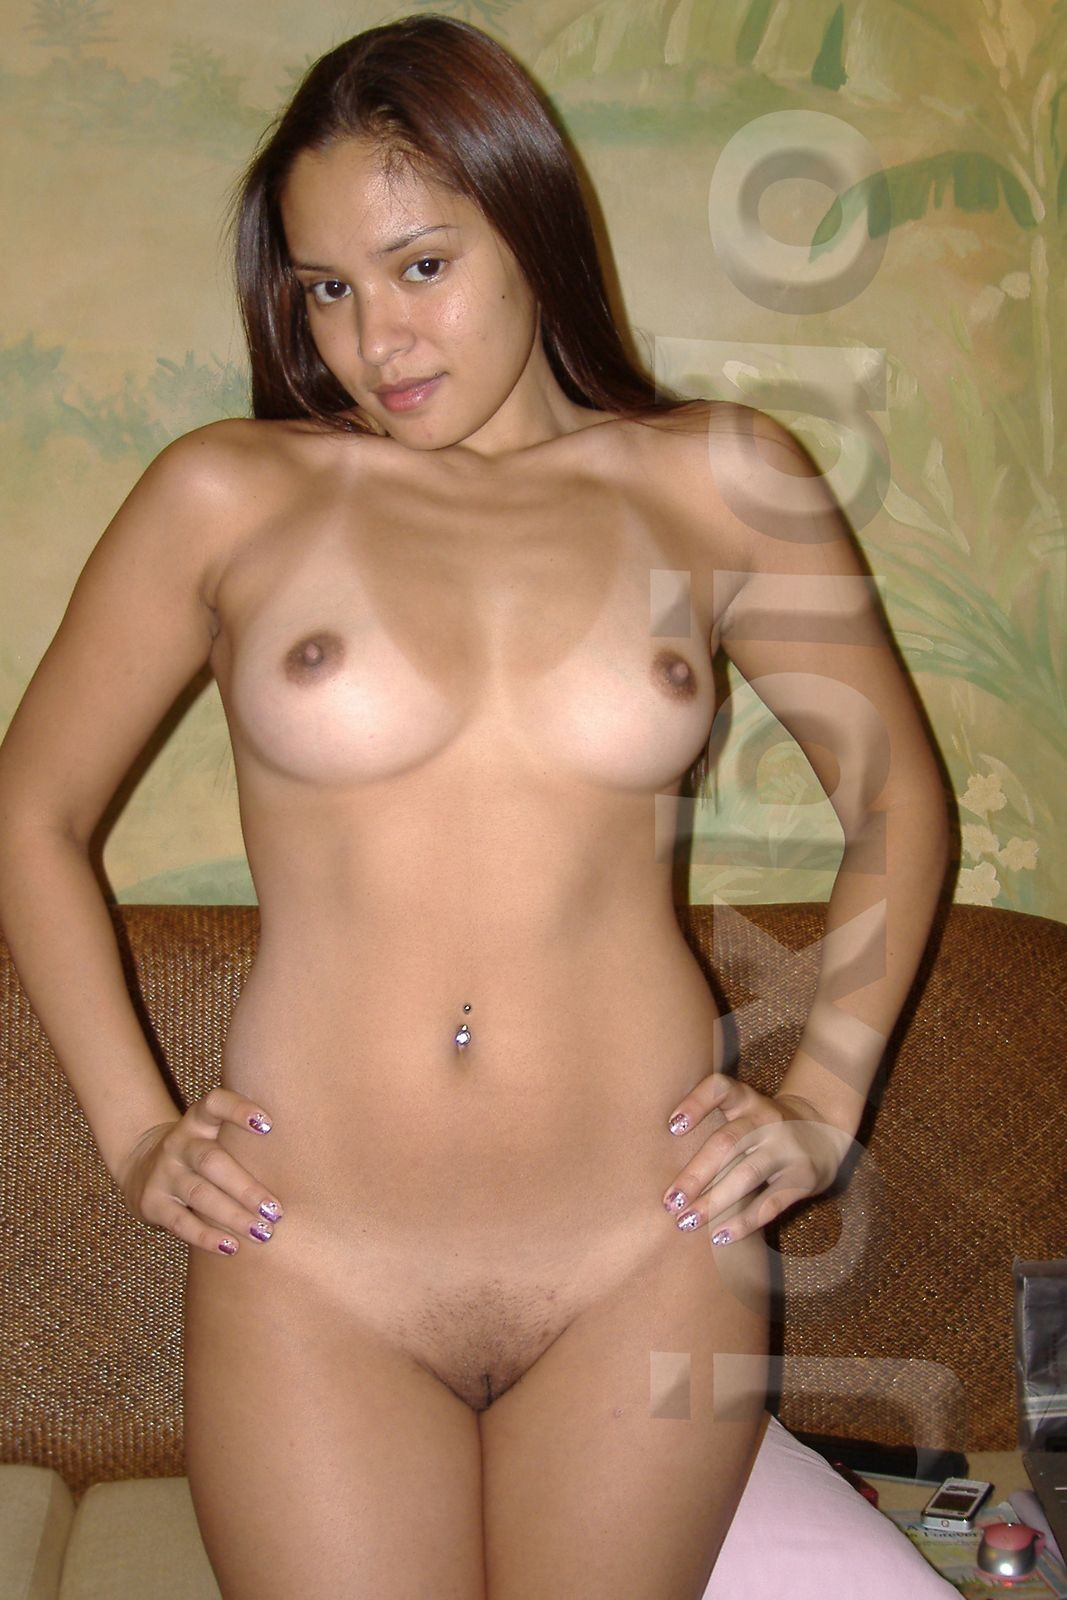 Yahoo pinay milf part 3 of 4 10